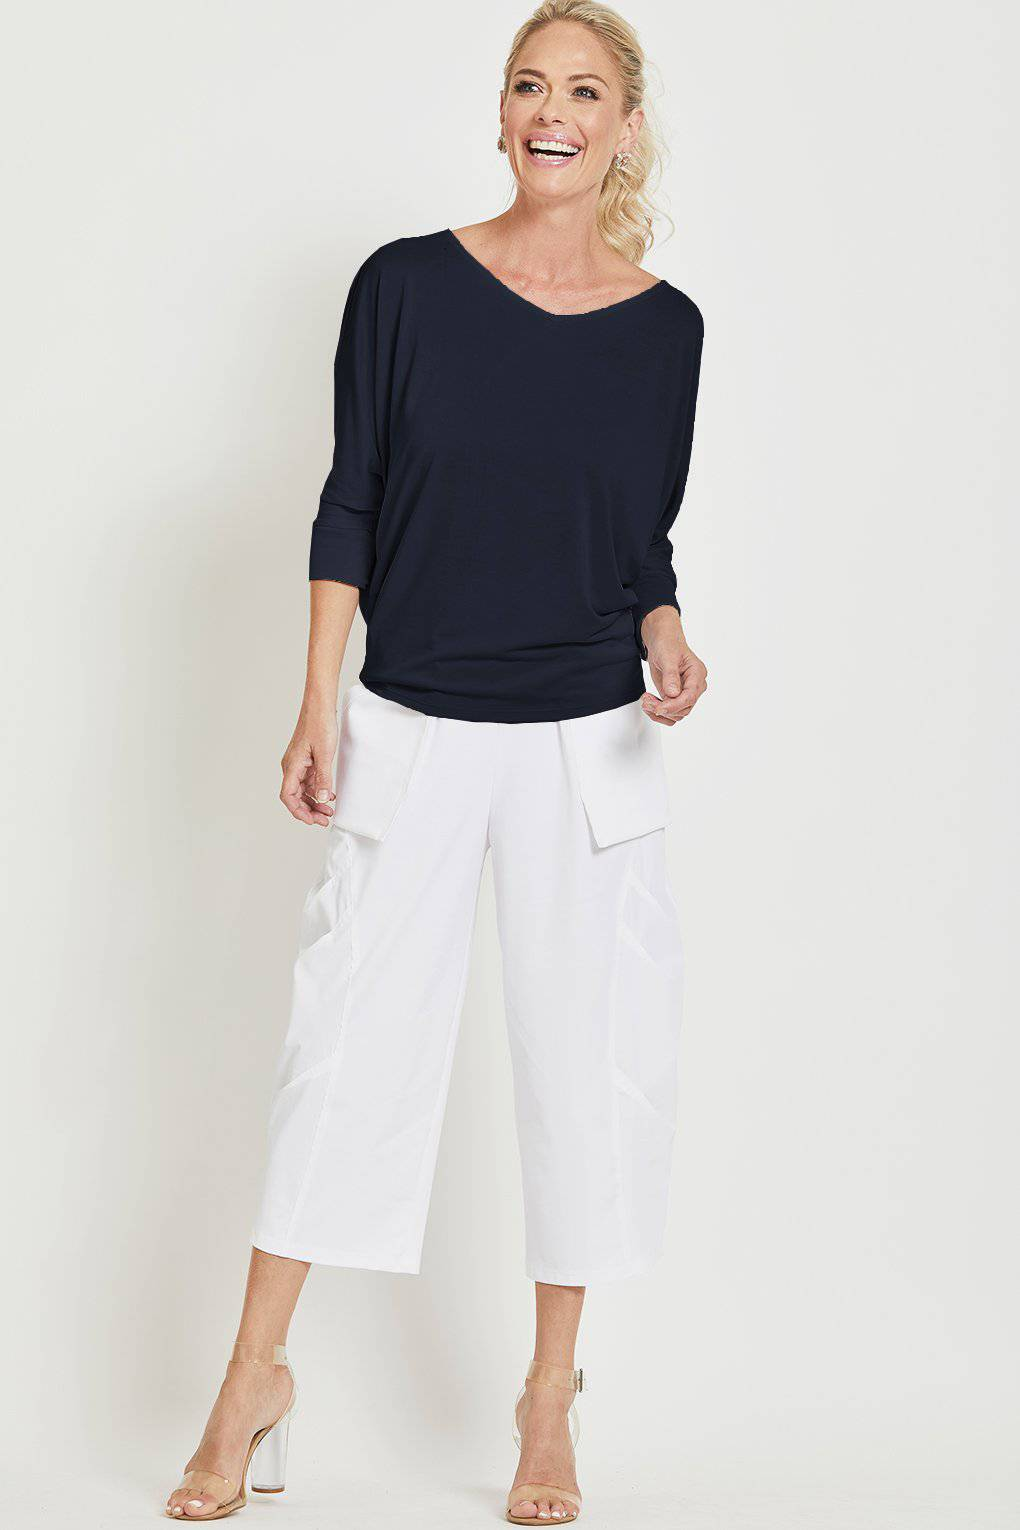 PAULA RYAN Batwing ¾ Sleeve V Neck Top - MicroModal - Paula Ryan